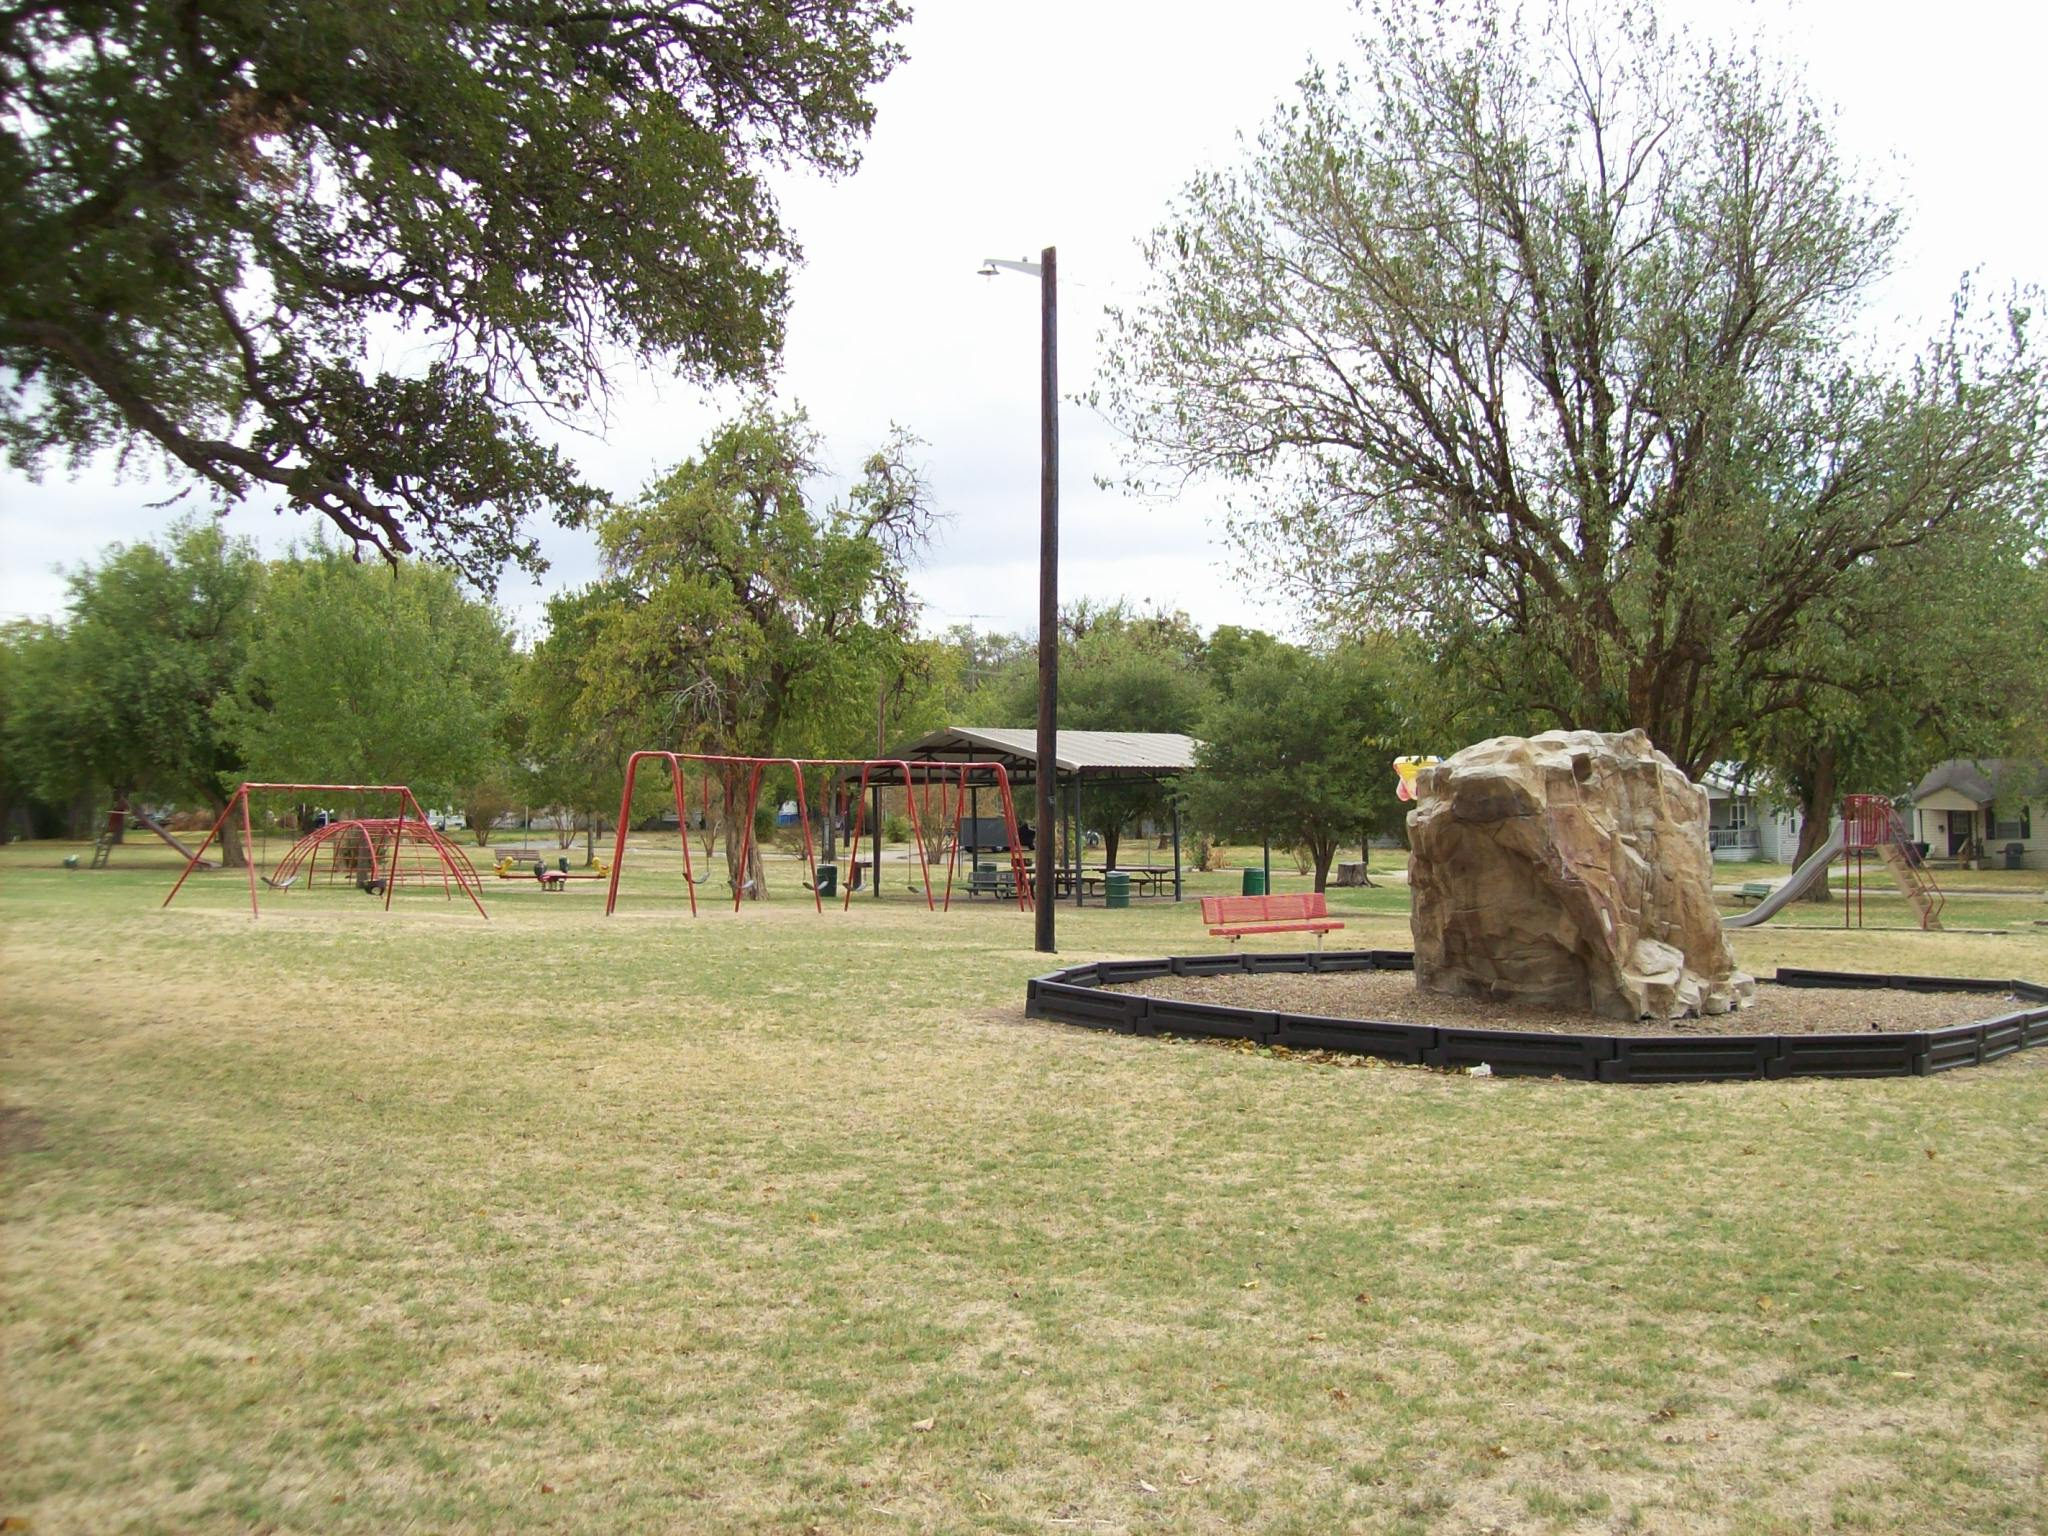 Park with benches, playground equipment, and a shelter.